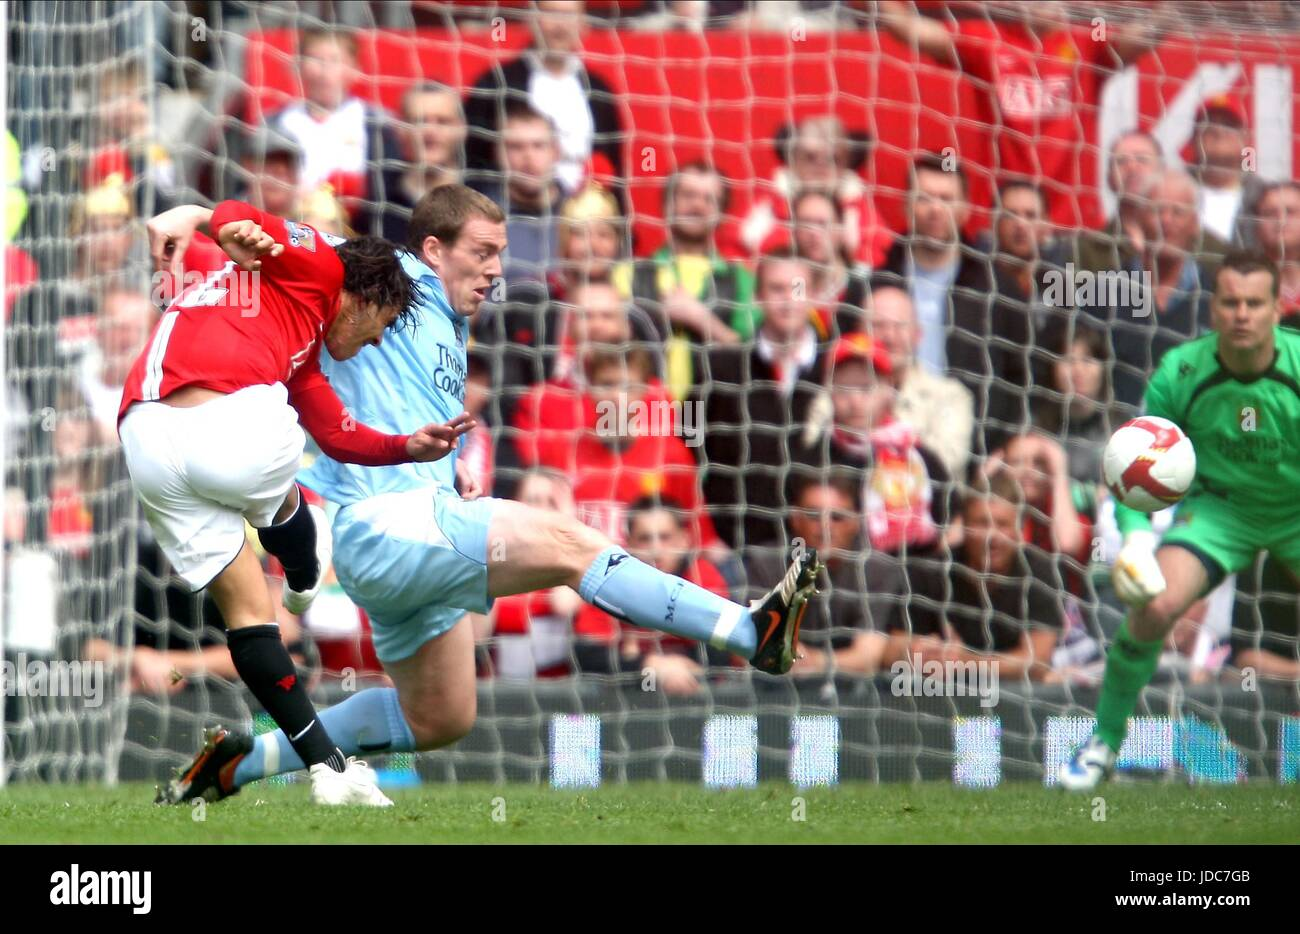 TEVEZ MAKES IT 2-0 MANCHESTER UNITED V MANCHESTER OLD TRAFFORD MANCHESTER ENGLAND 10 May 2009 - Stock Image